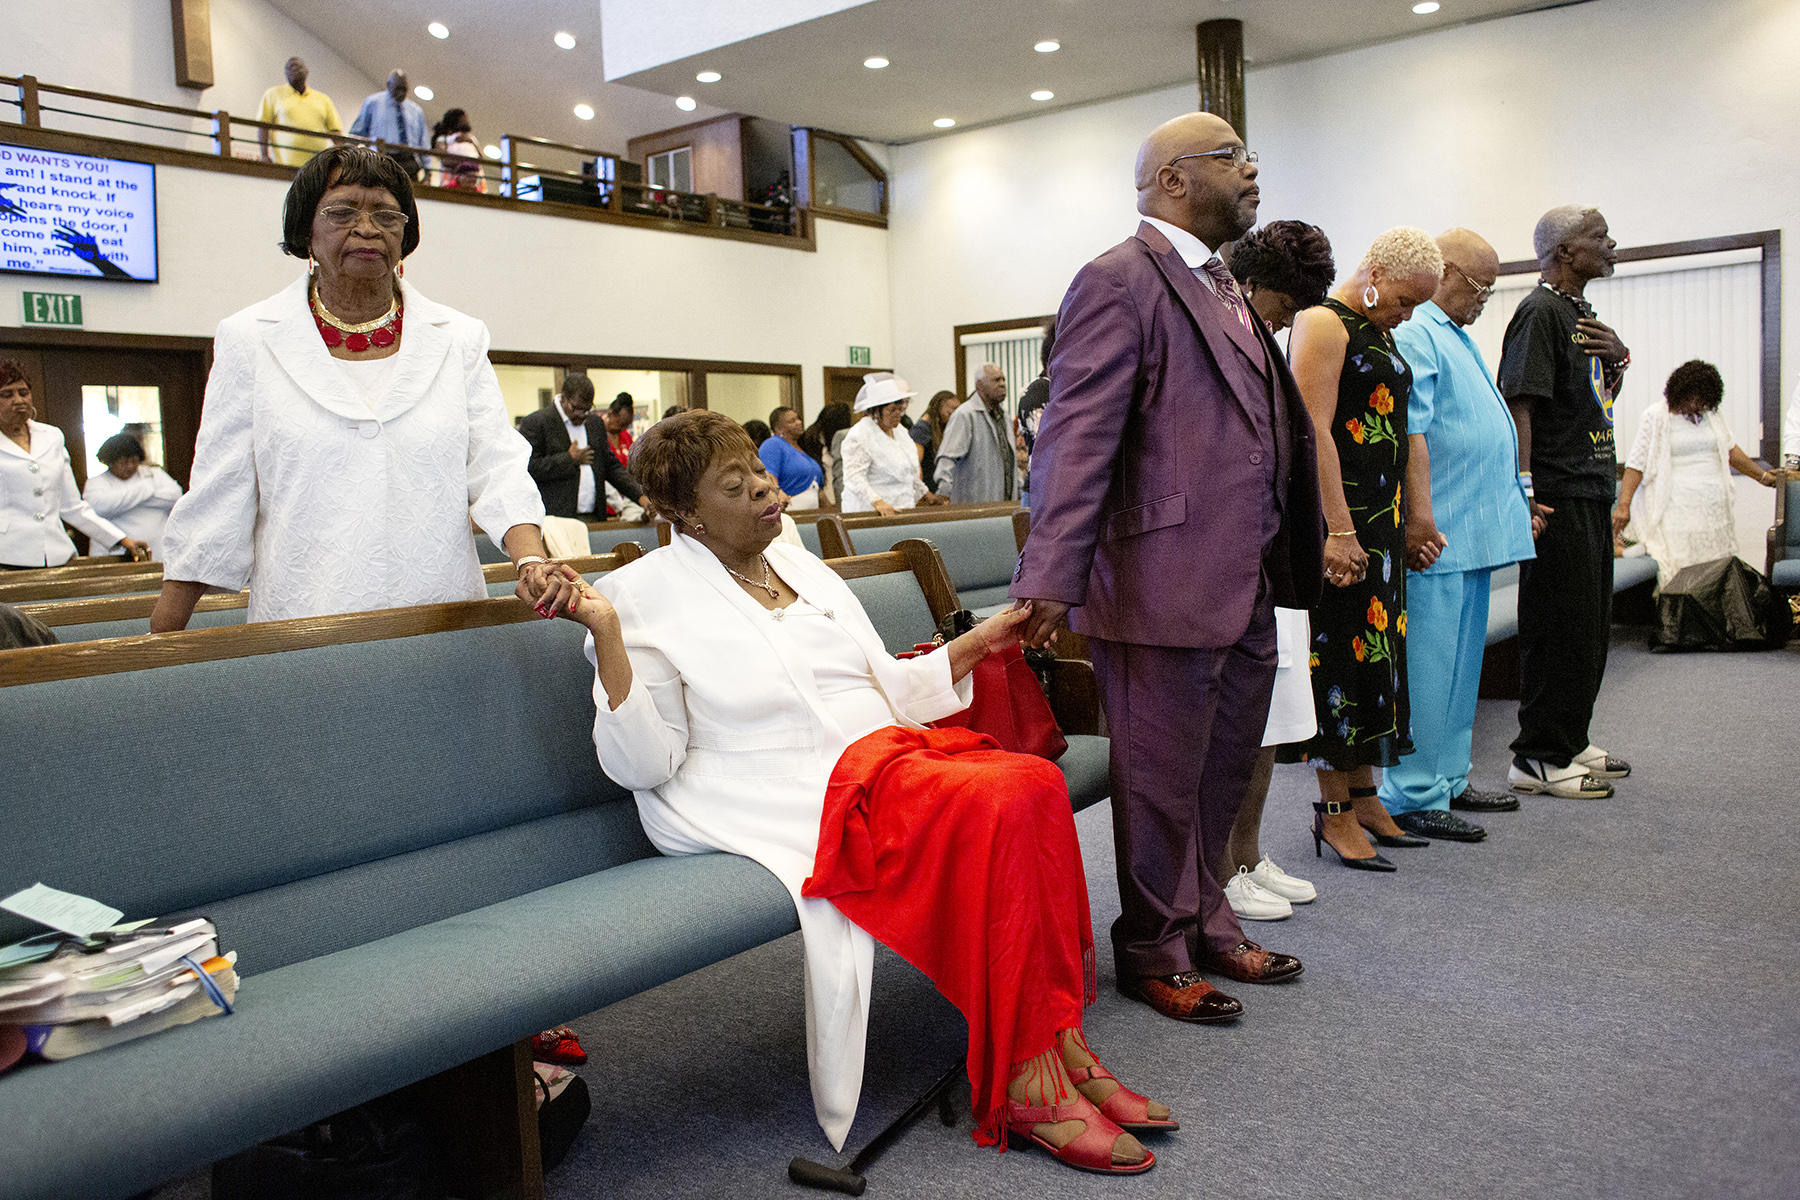 Congregants participate in Sunday service at St. John Missionary Baptist Church in East Palo Alto, Calif., on April 14, 2019. The church has been a pillar of the African American community in East Palo Alto for decades.